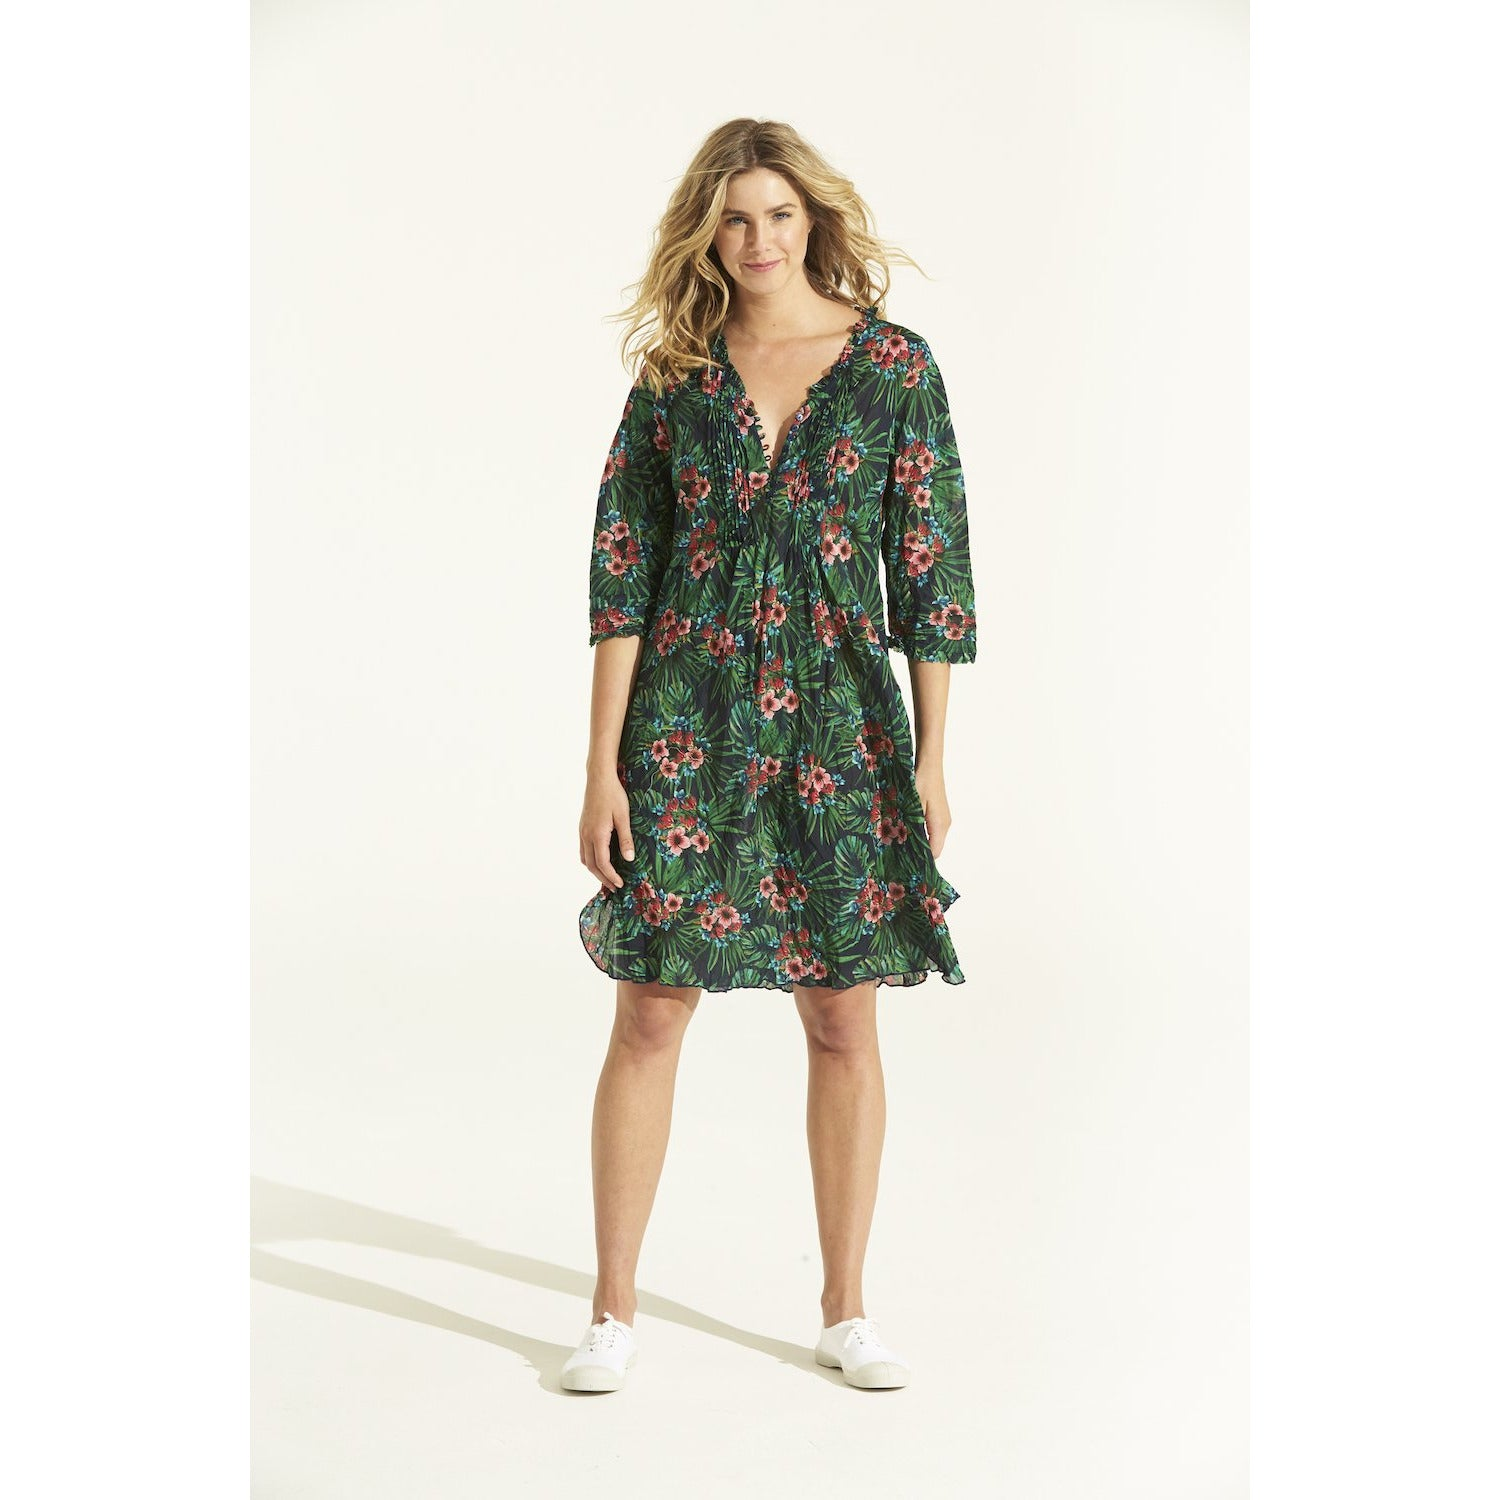 oneseason Middy Poppy Dress Honolulu Emerald cotton print.